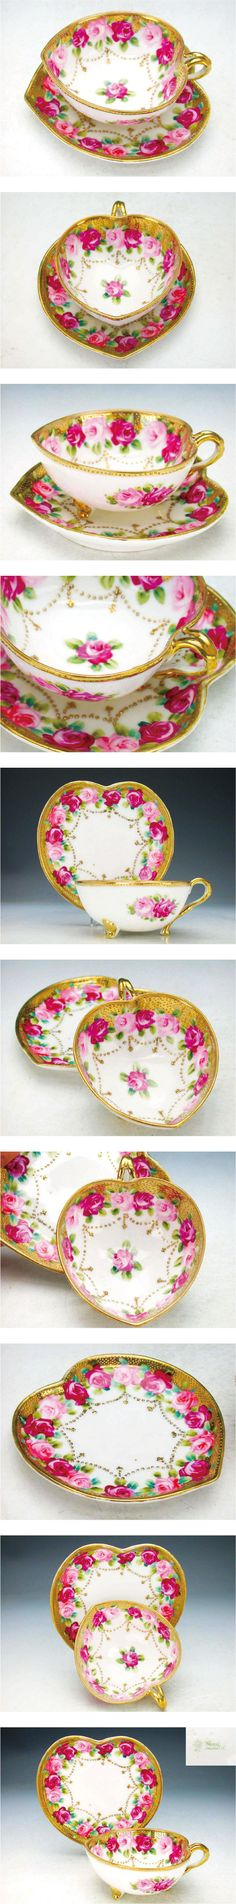 Old Noritake  heart shaped cup and saucer  c.1891